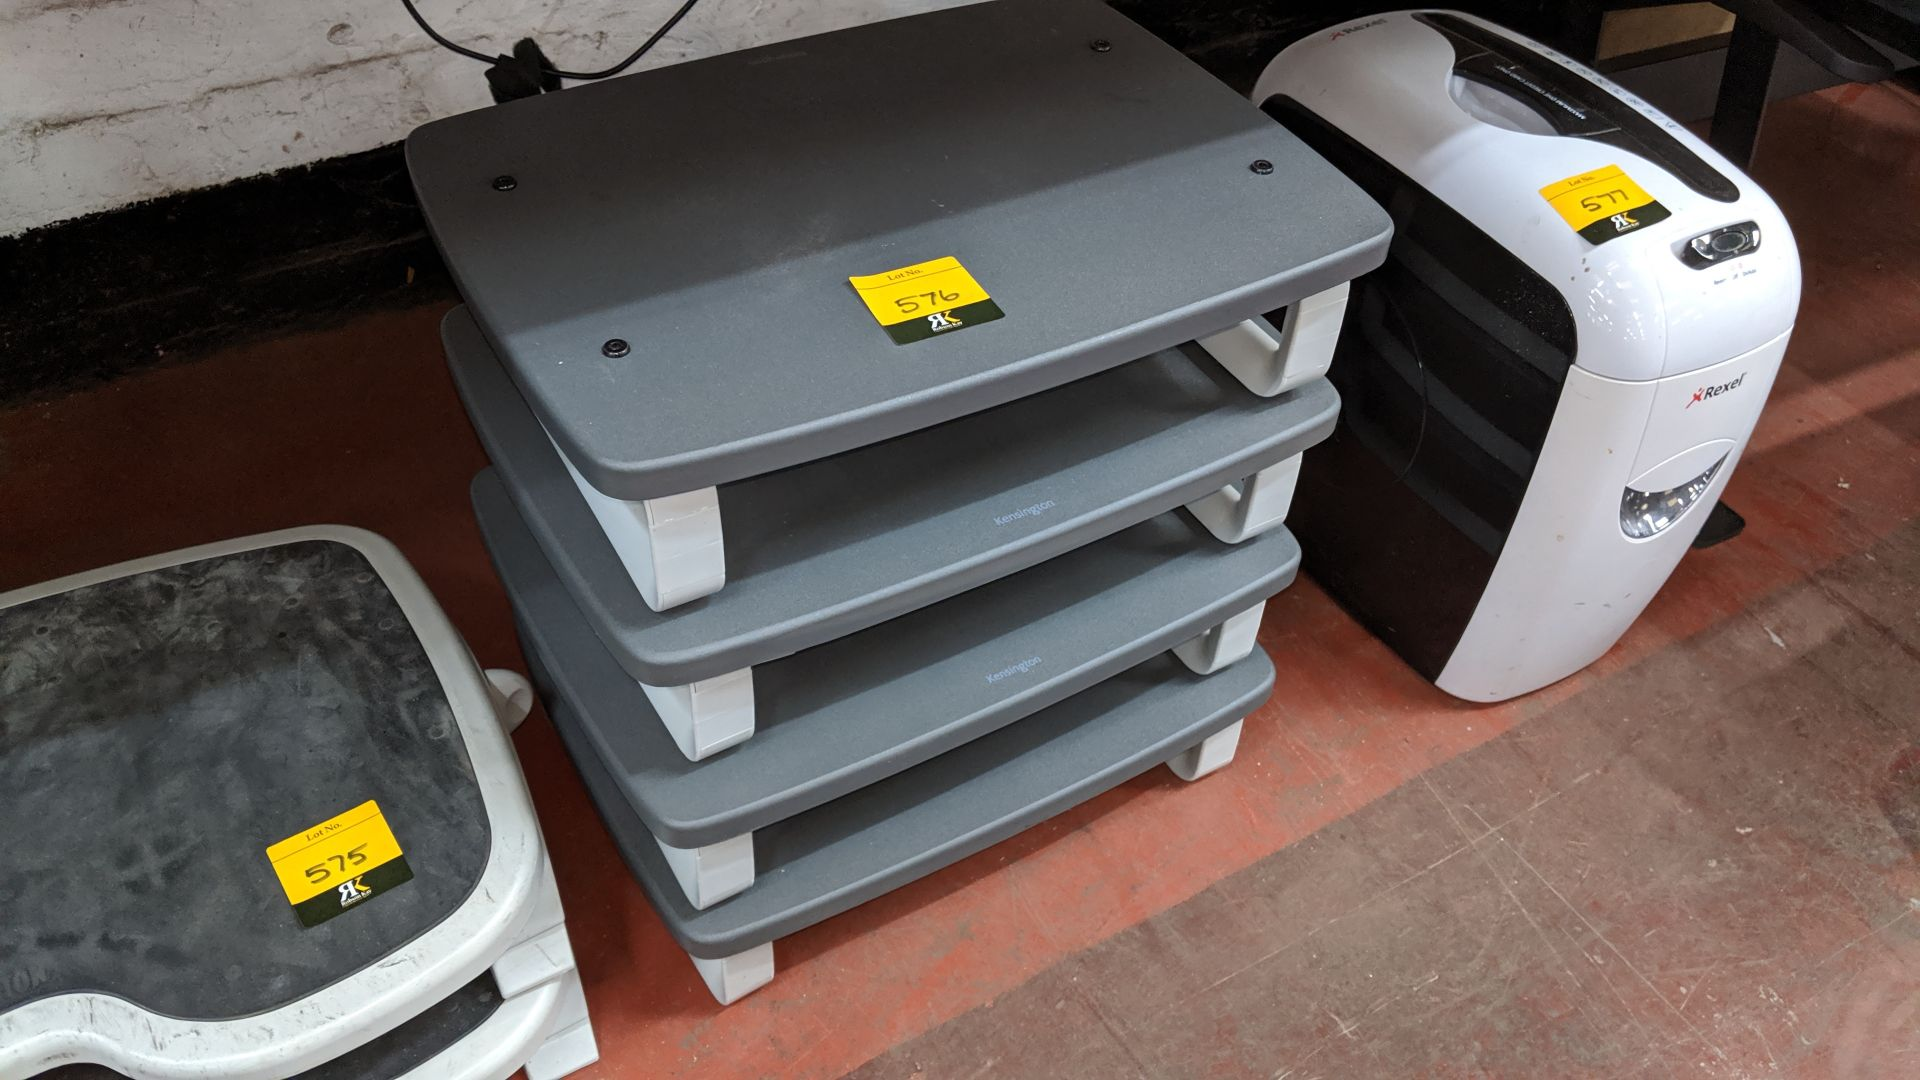 Lot 576 - 4 off Kensington monitor stands. Lots 560 - 580 form the total assets of a healthcare recruitment